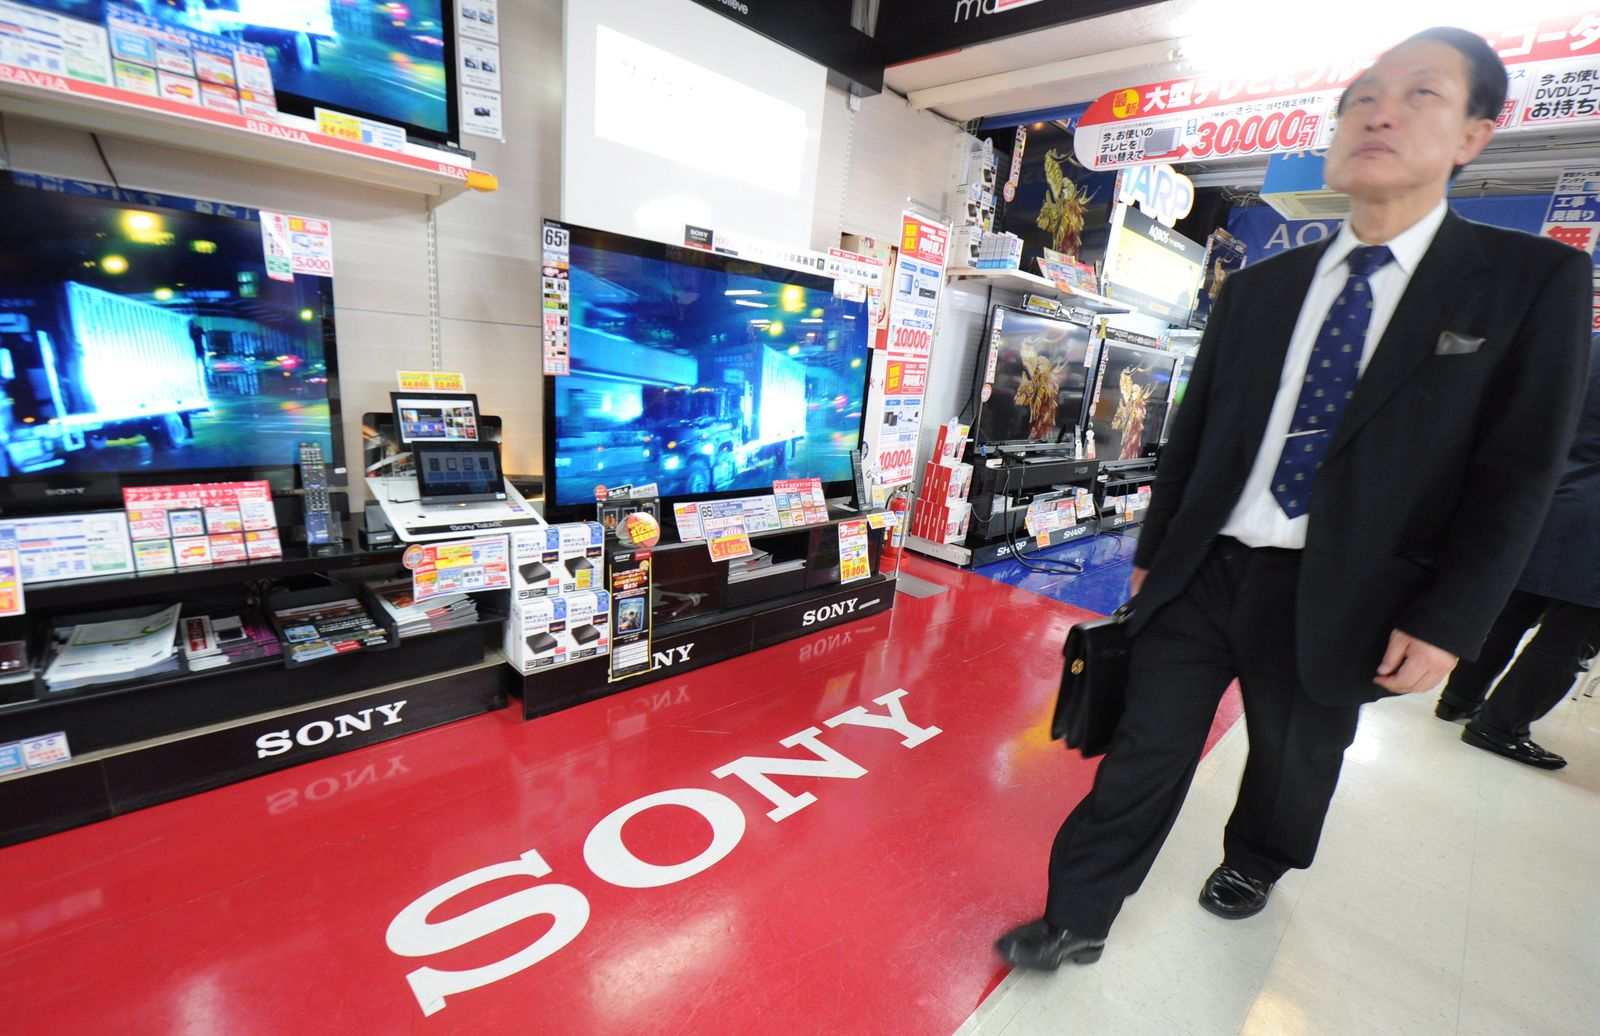 Sony Corp. to Cut 10,000 Jobs Globally